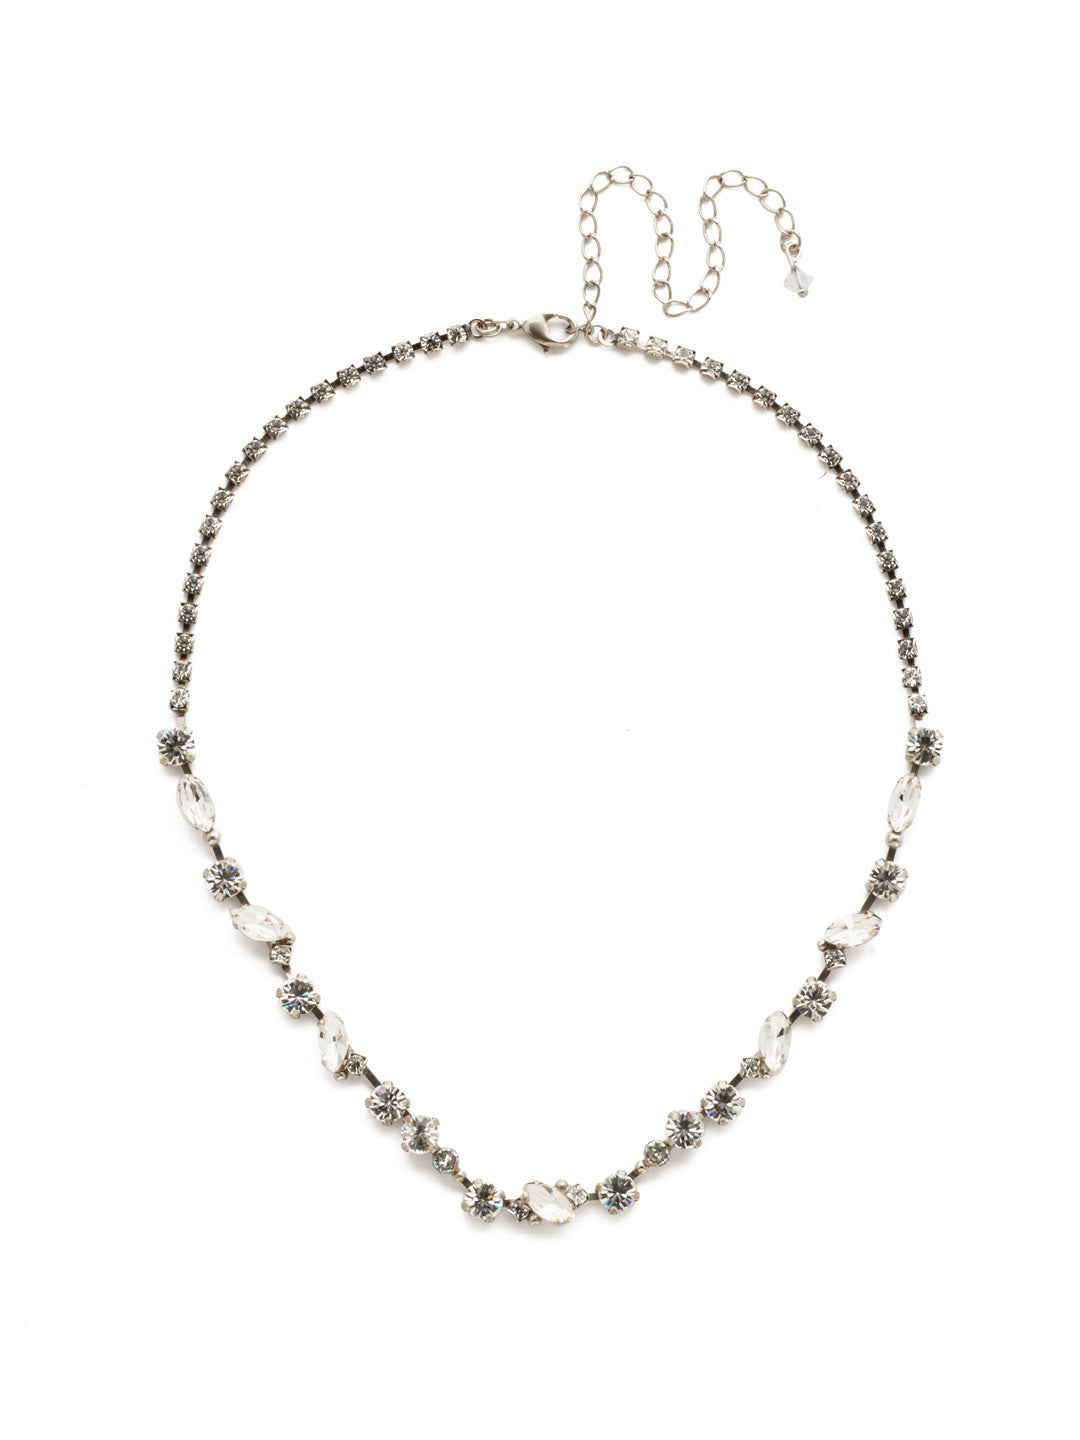 Simply Stated Tennis Necklace - NDN1ASCRY